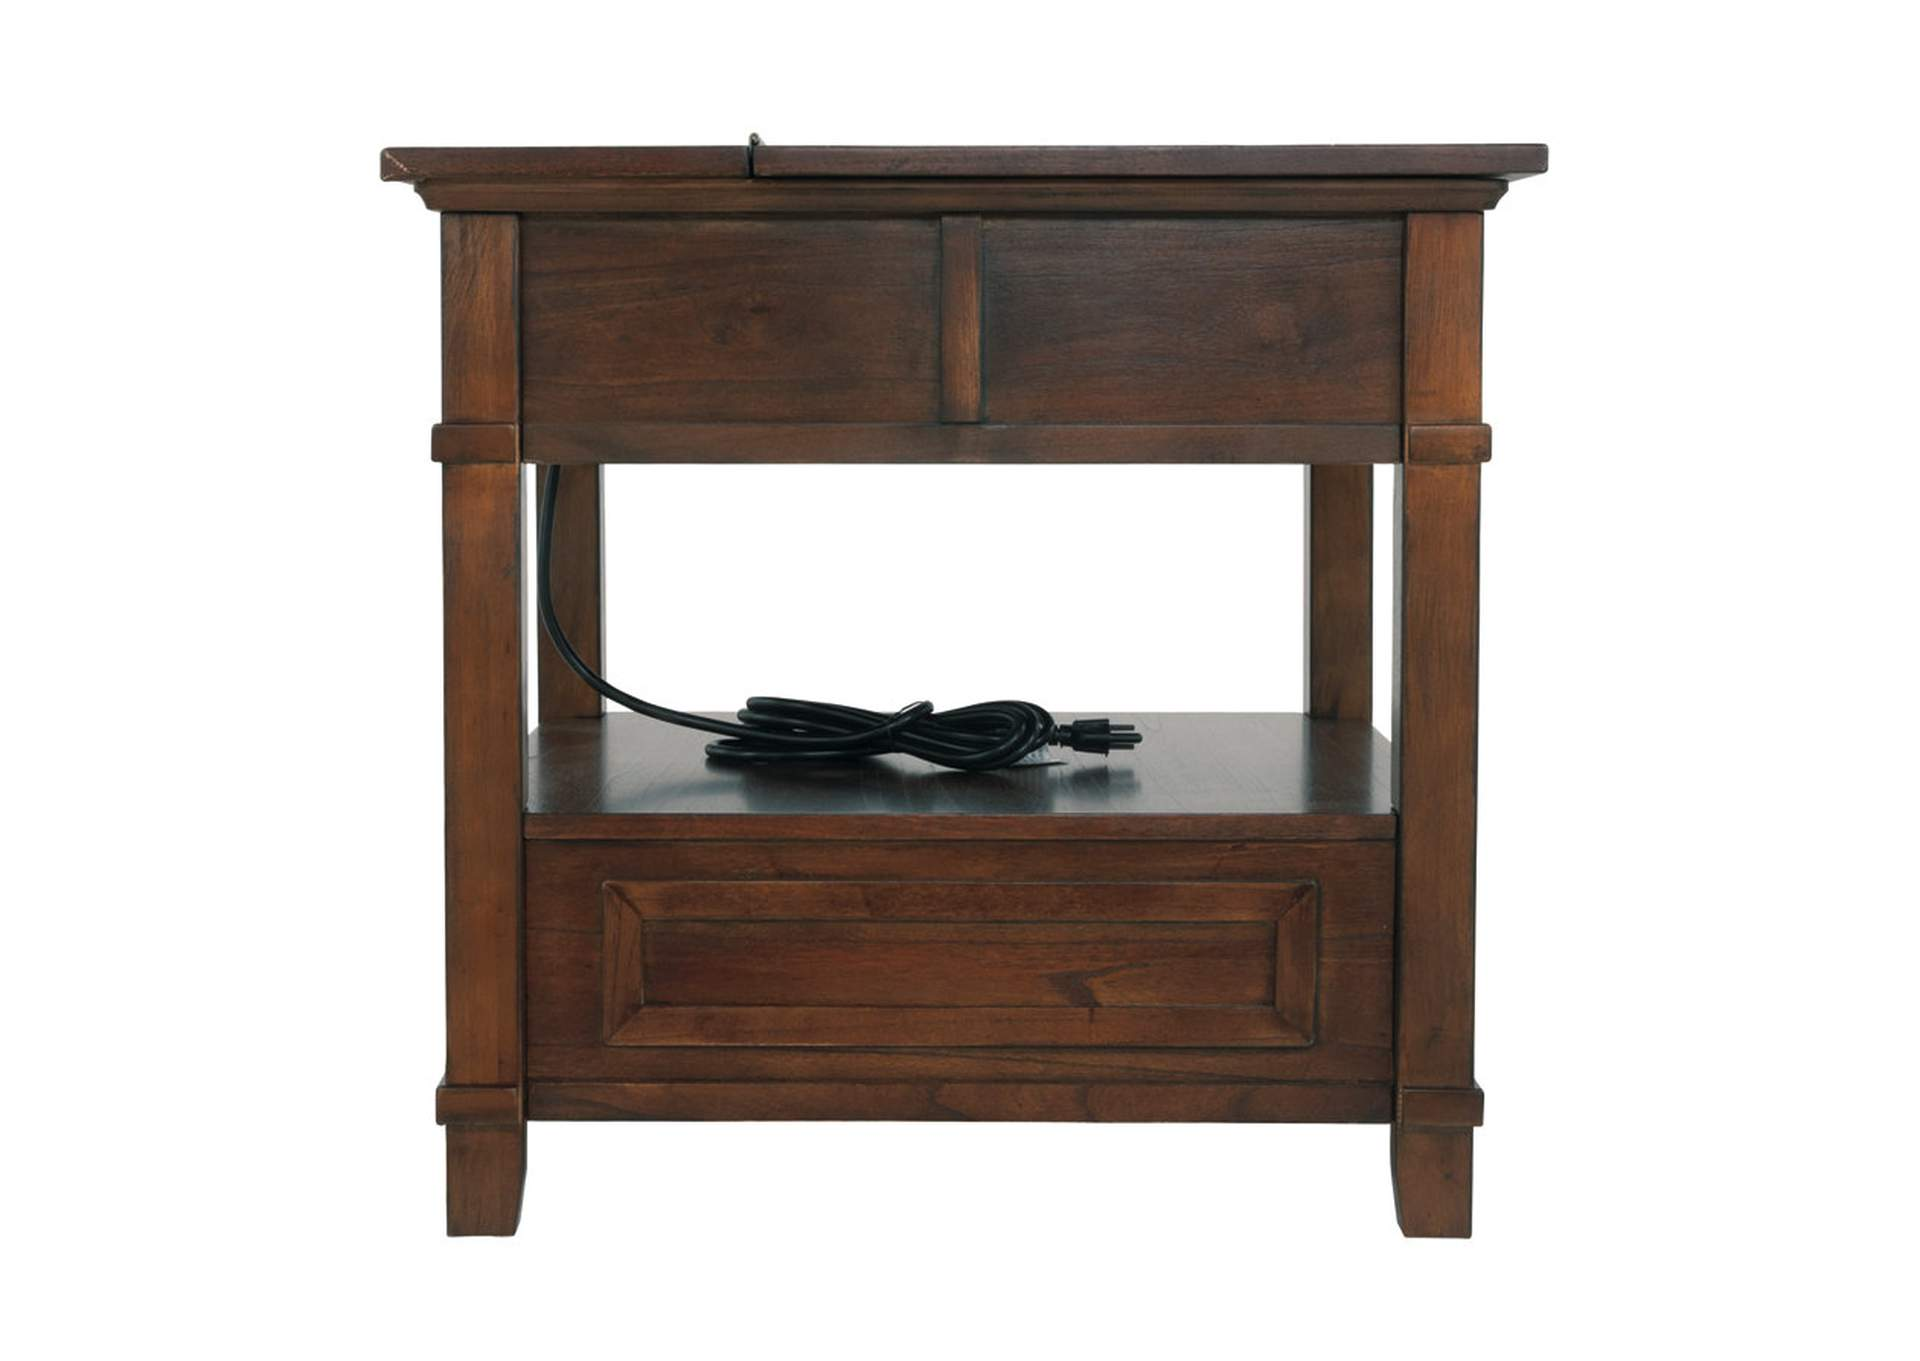 Gately Brown End Table with Storage & Power Outlets,Direct To Consumer Express